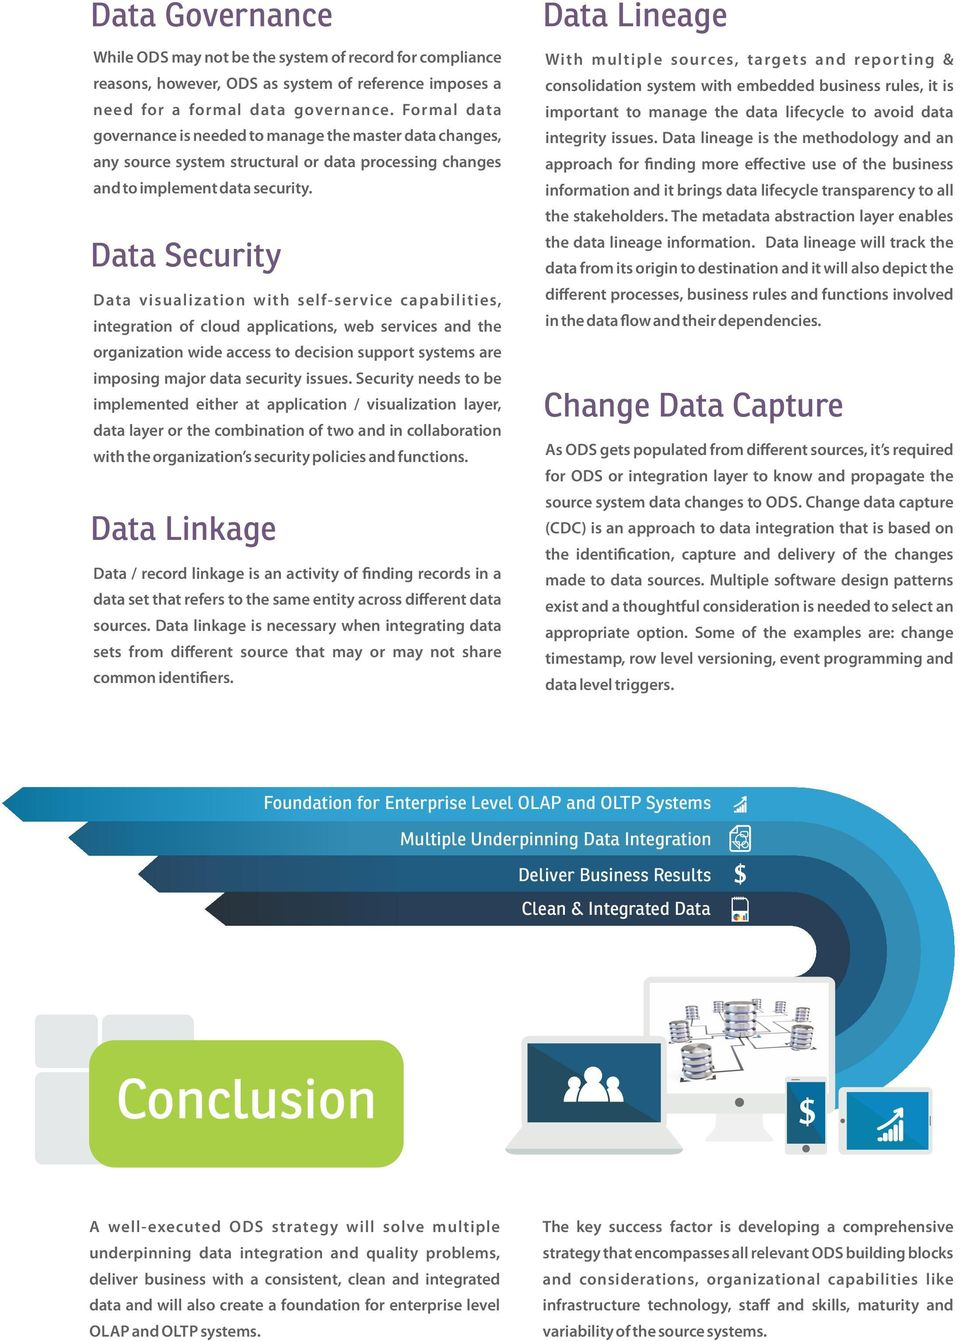 Data Security Data visualization with self-ser vice capabilities, integration of cloud applications, web services and the organization wide access to decision support systems are imposing major data